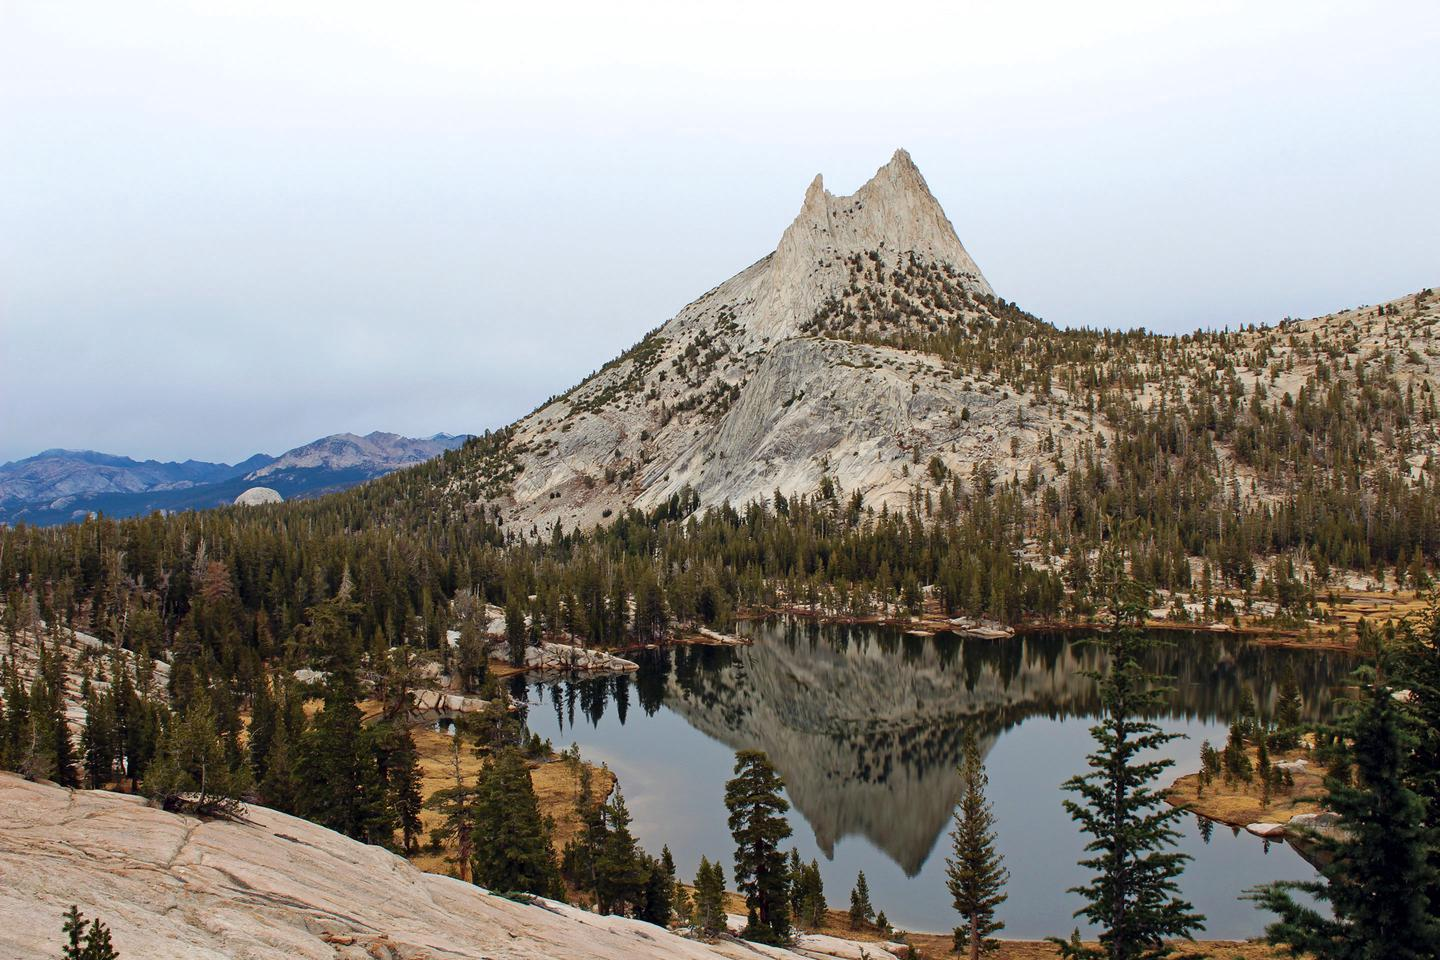 Cathedral Peak and Lake in AutumnCathedral Peak is one of the most recognizable peaks in the Yosemite Wilderness.